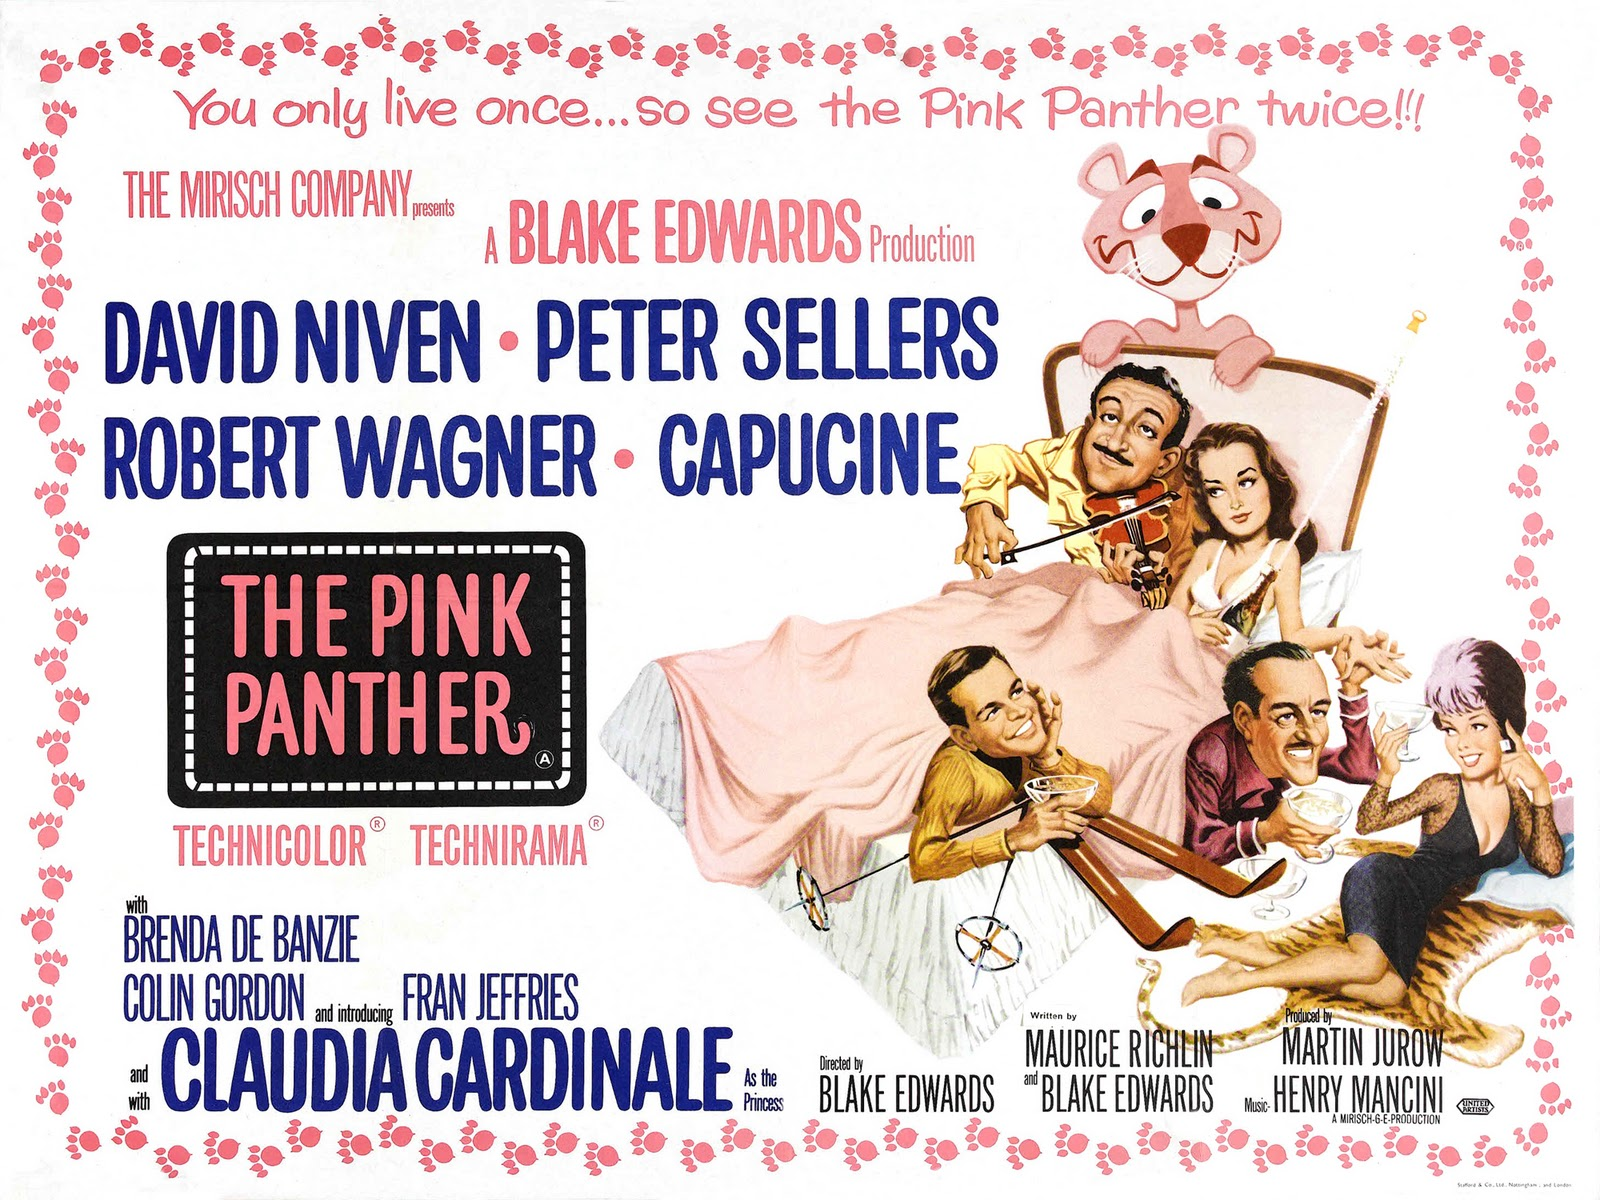 The-Pink-Panther-poster-via-rato-movieposters.blogspot.gr_